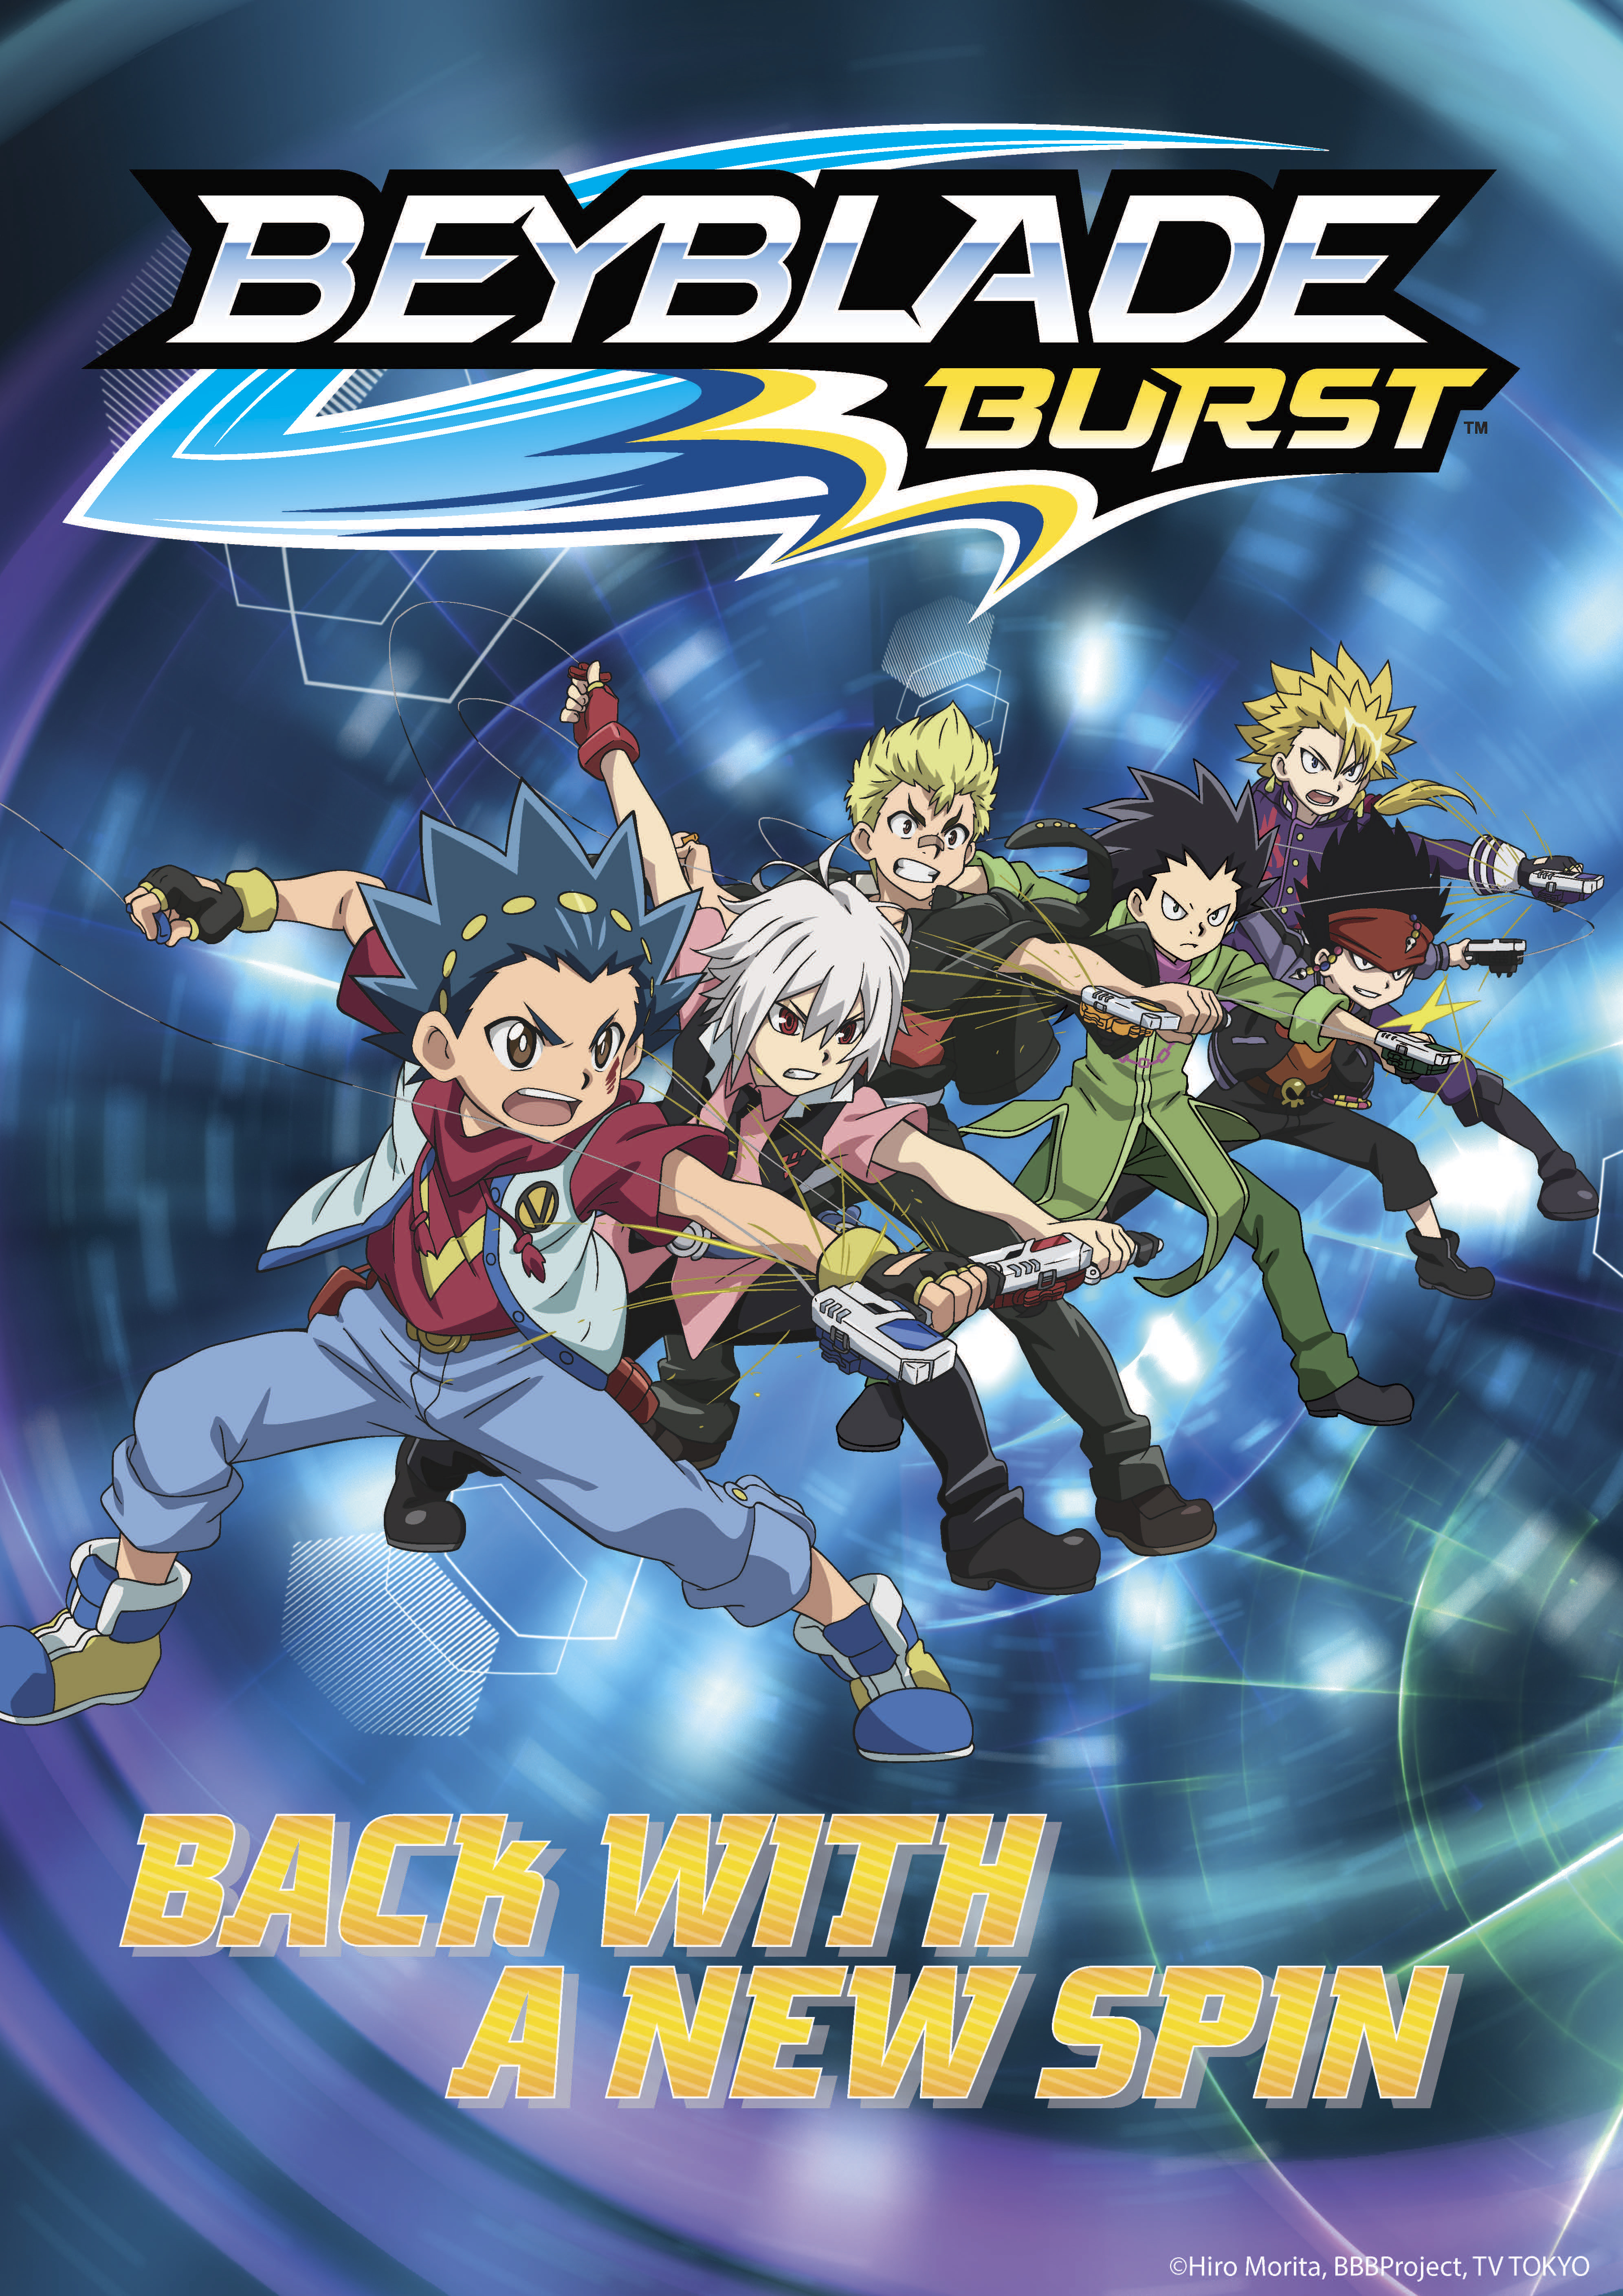 SUNRIGHTS INC. Brings Beyblade Burst Animated Series to Disney XD in the U.S. (Photo: Business Wire)